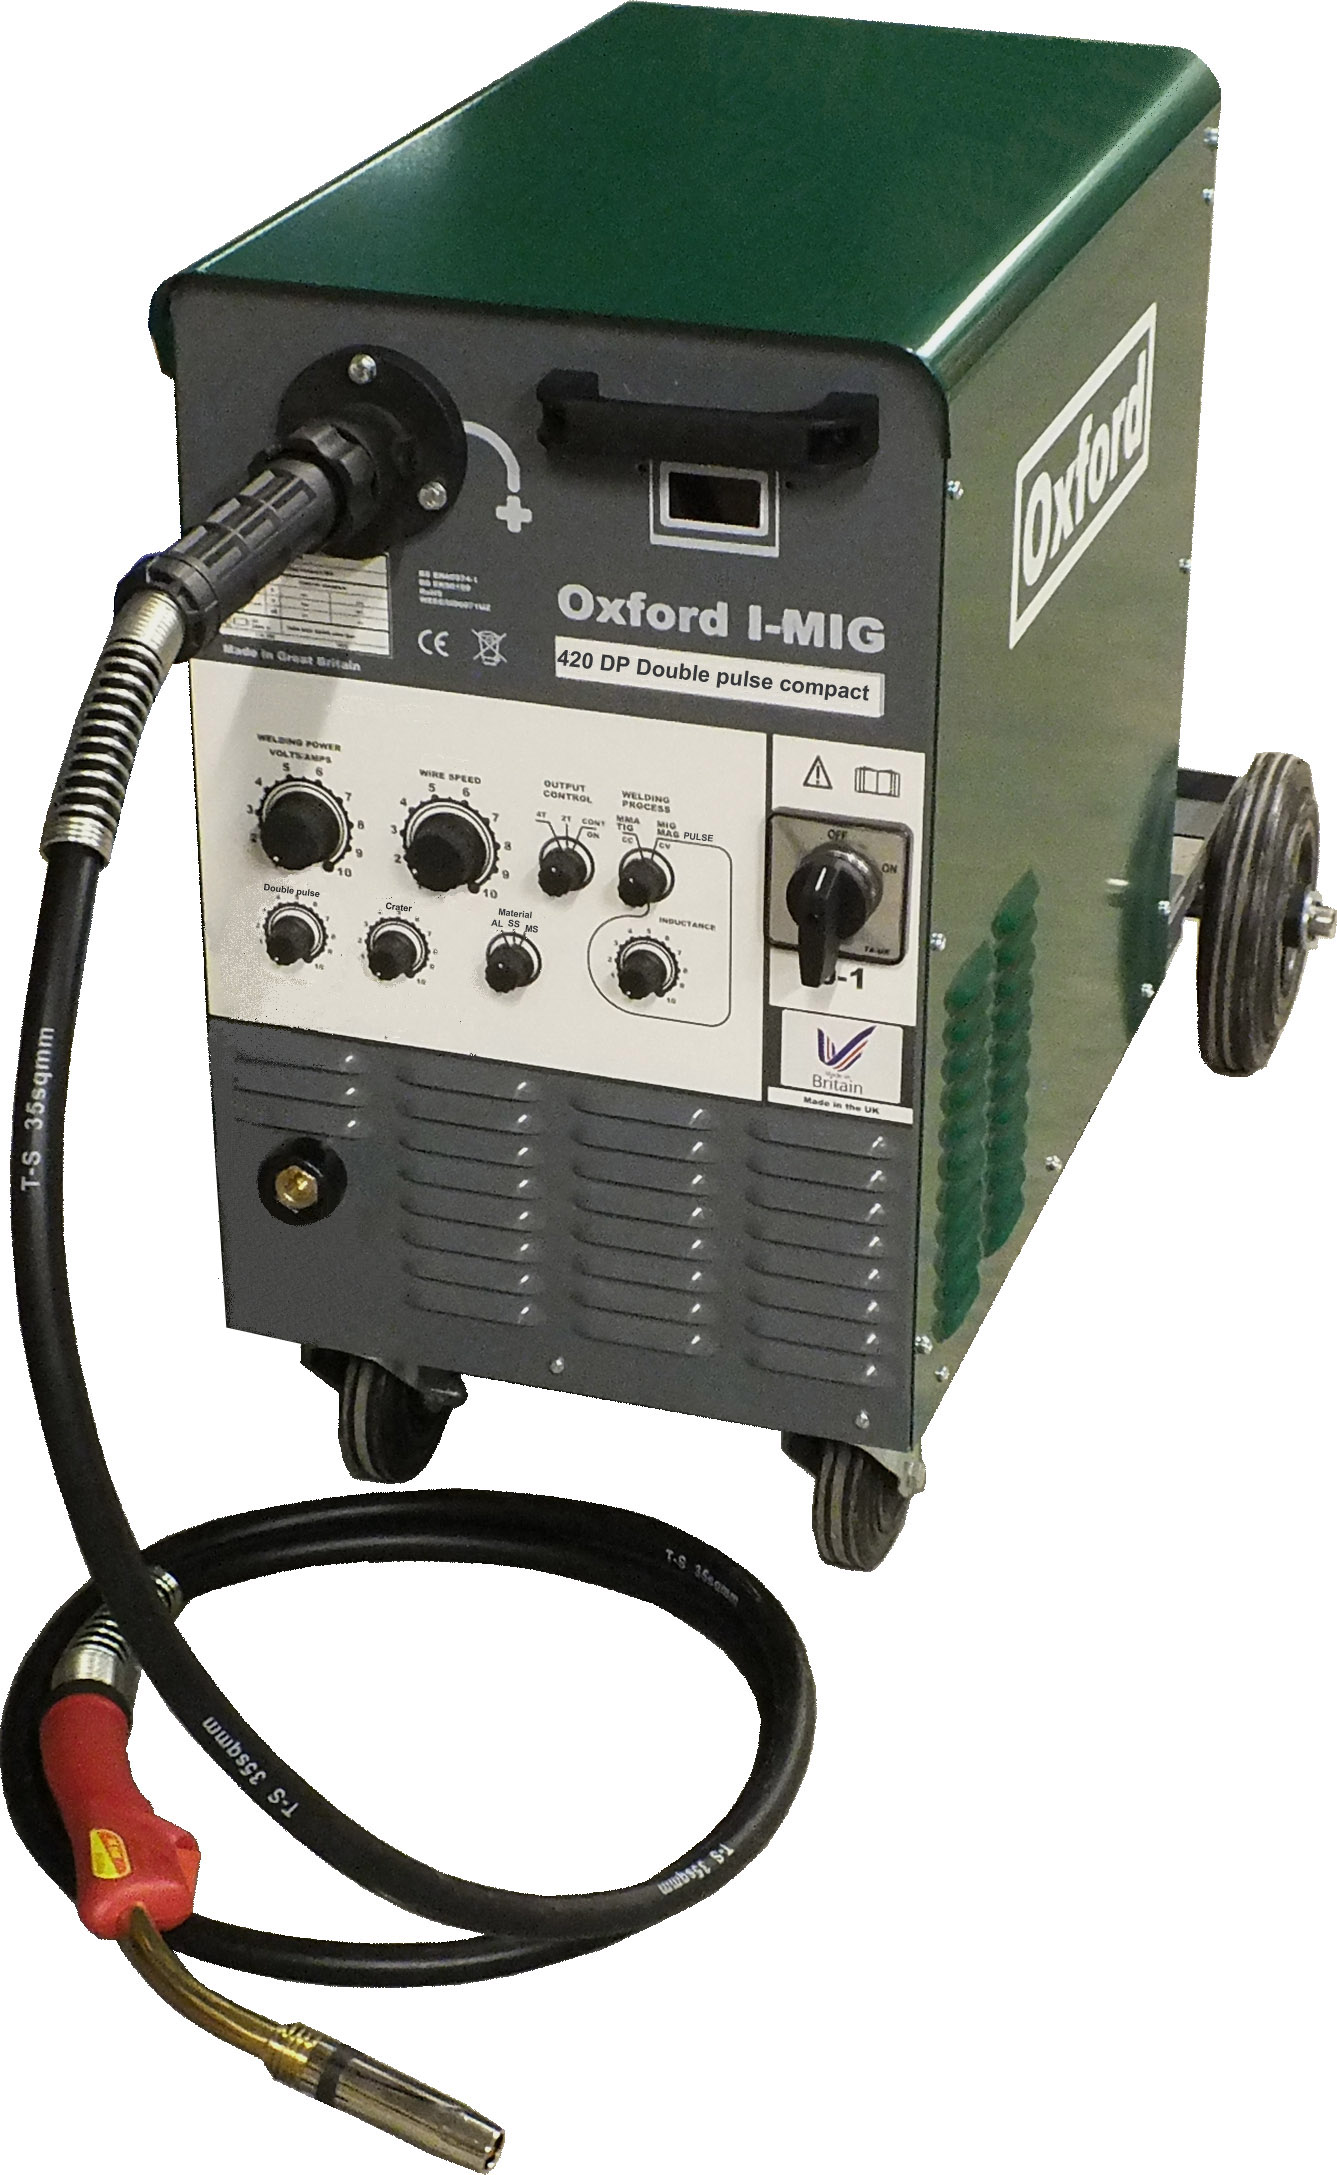 Oxford I-MIG 270 DP dual voltage Image